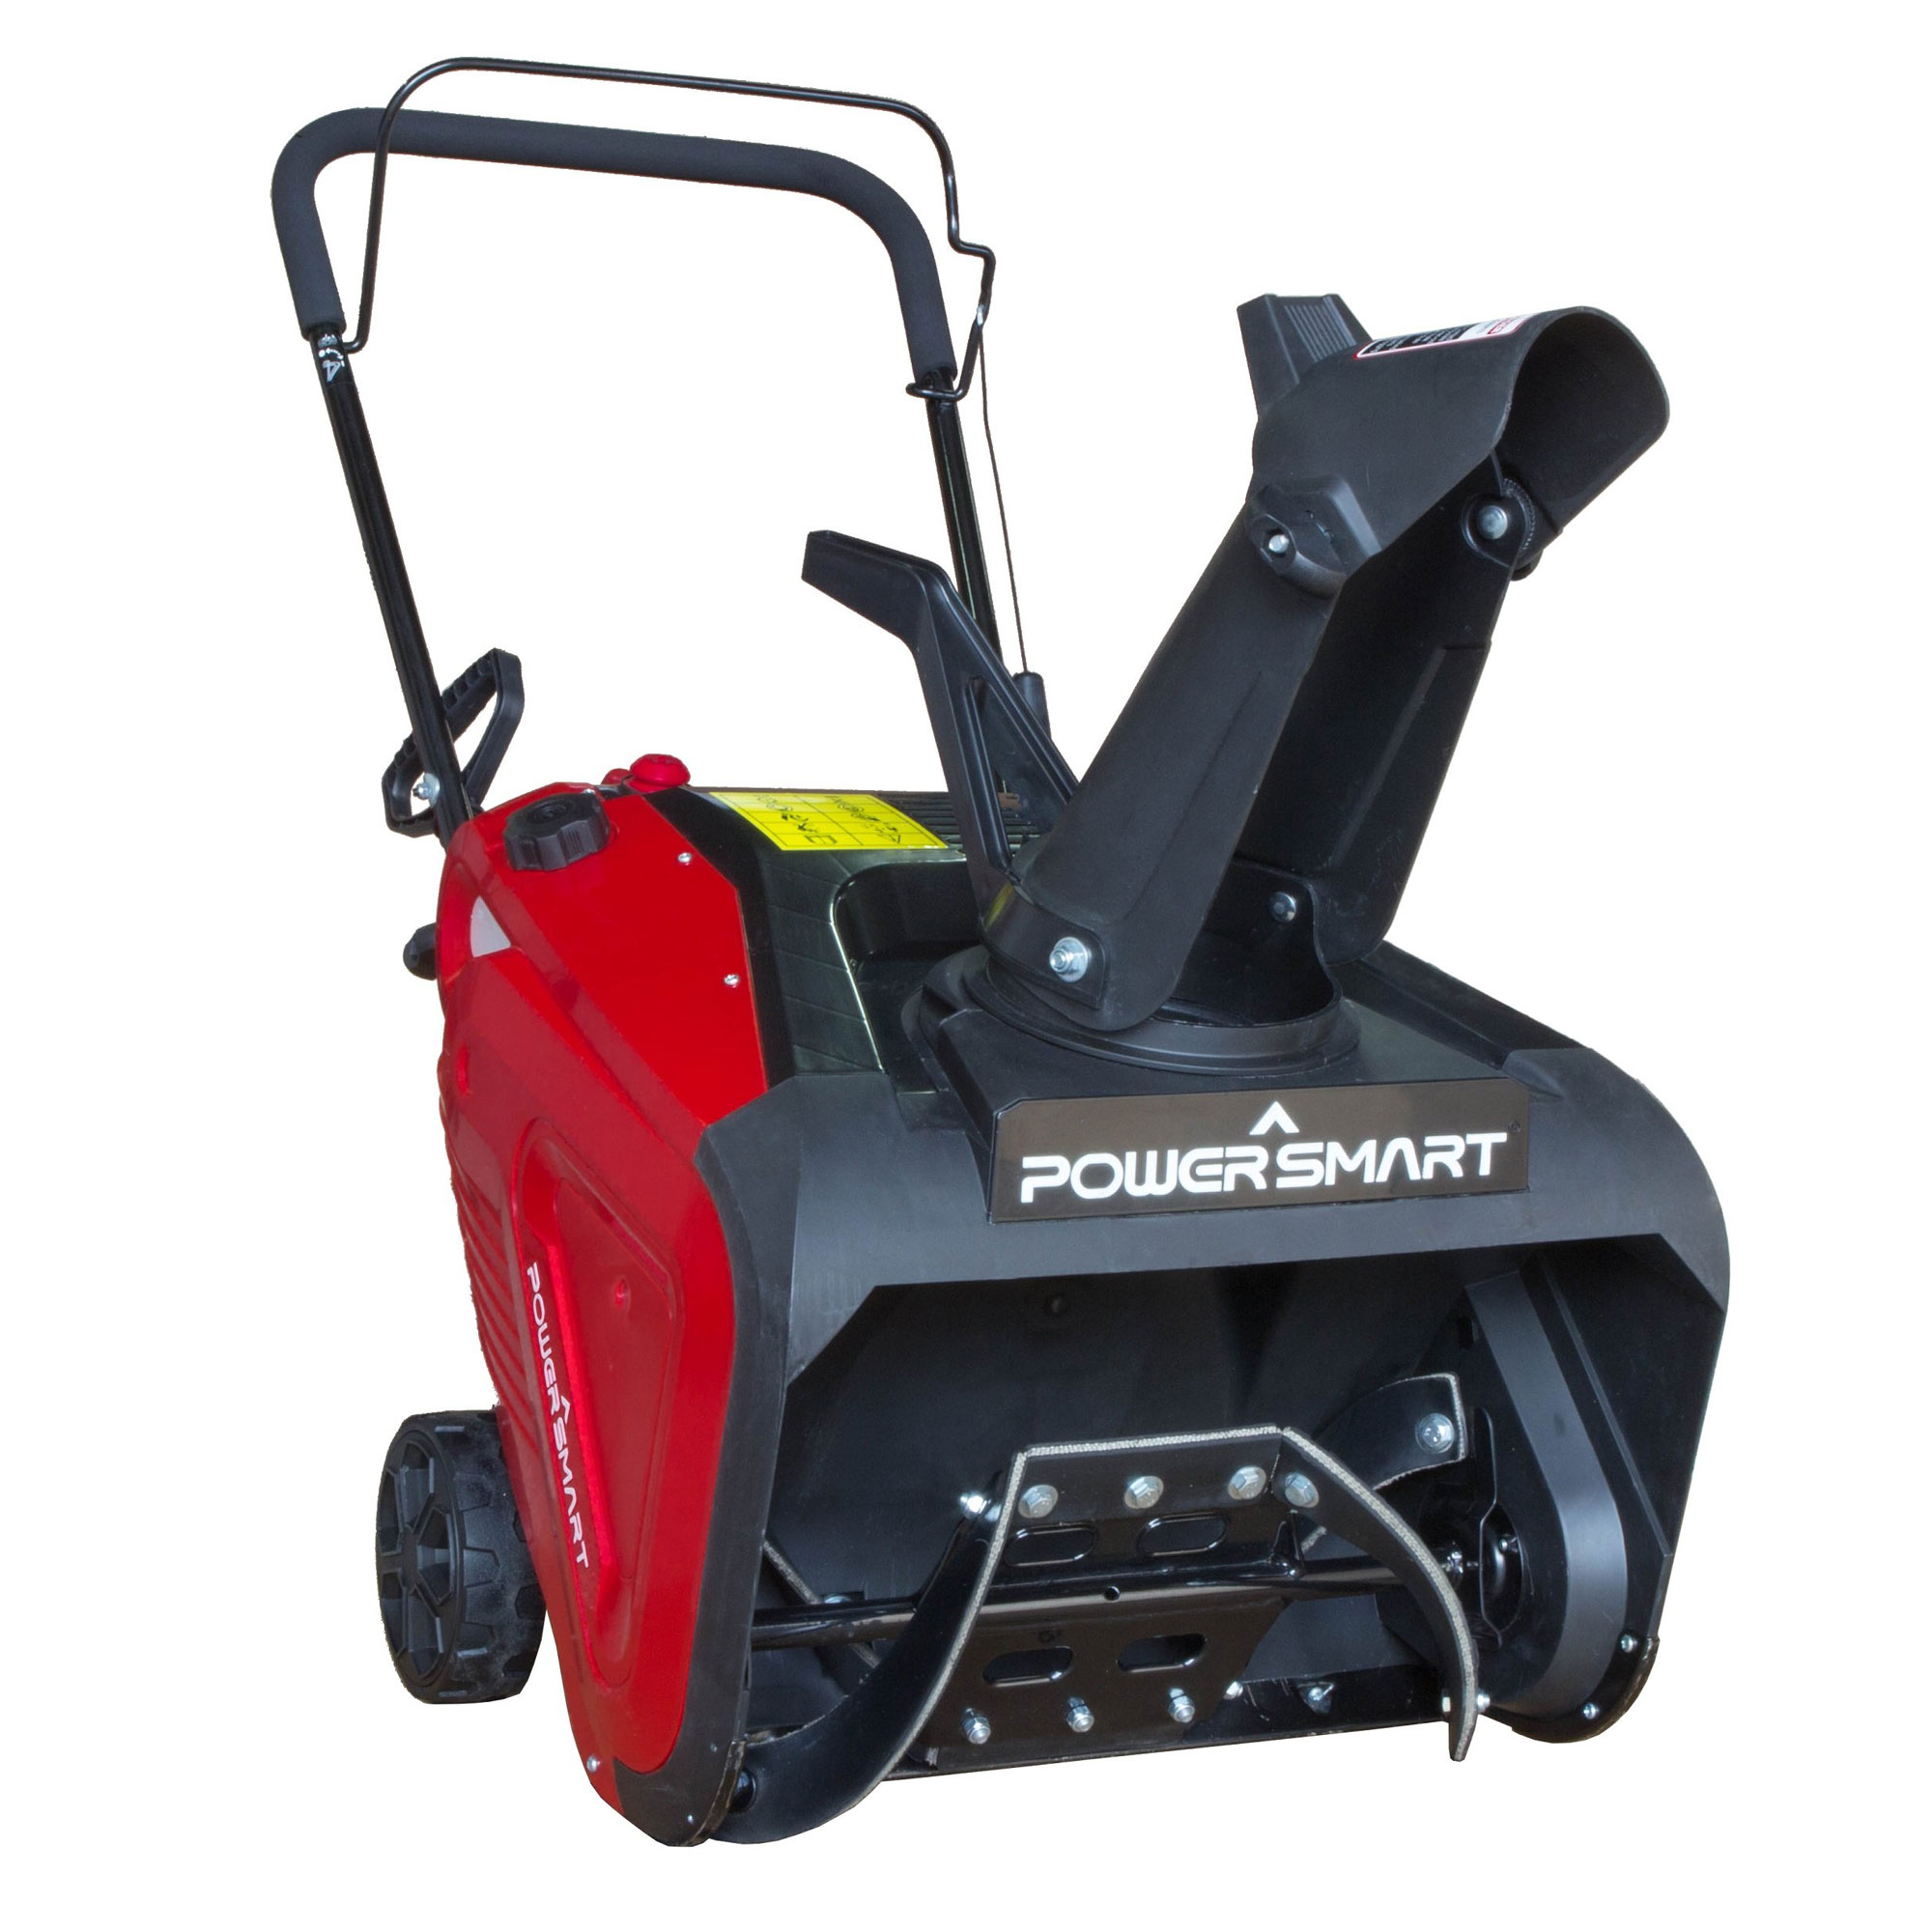 PowerSmart DB7005 Single Stage Gas Powered 196 cc Lightweight Compact Snow Blower